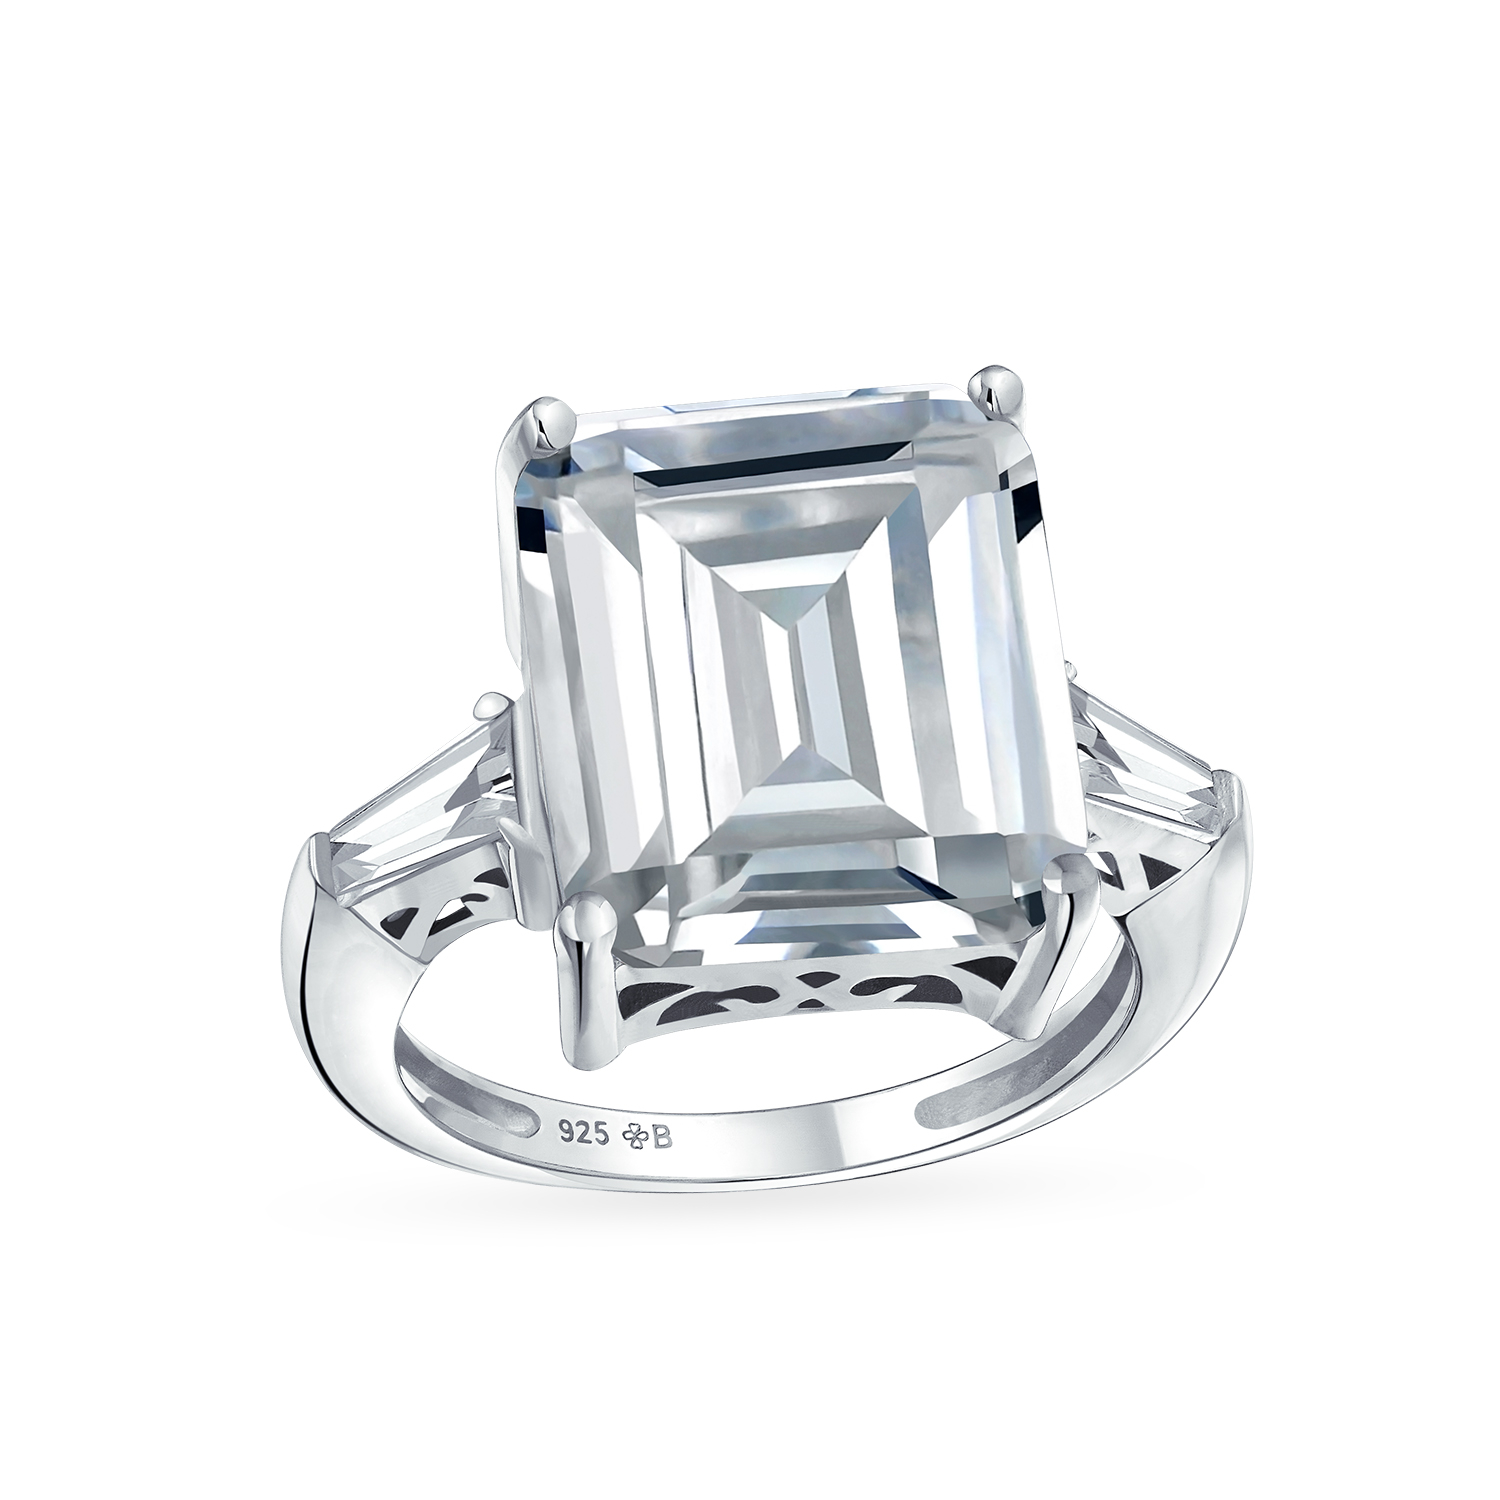 925 Sterling Silver CZ Ring with Accent Stones